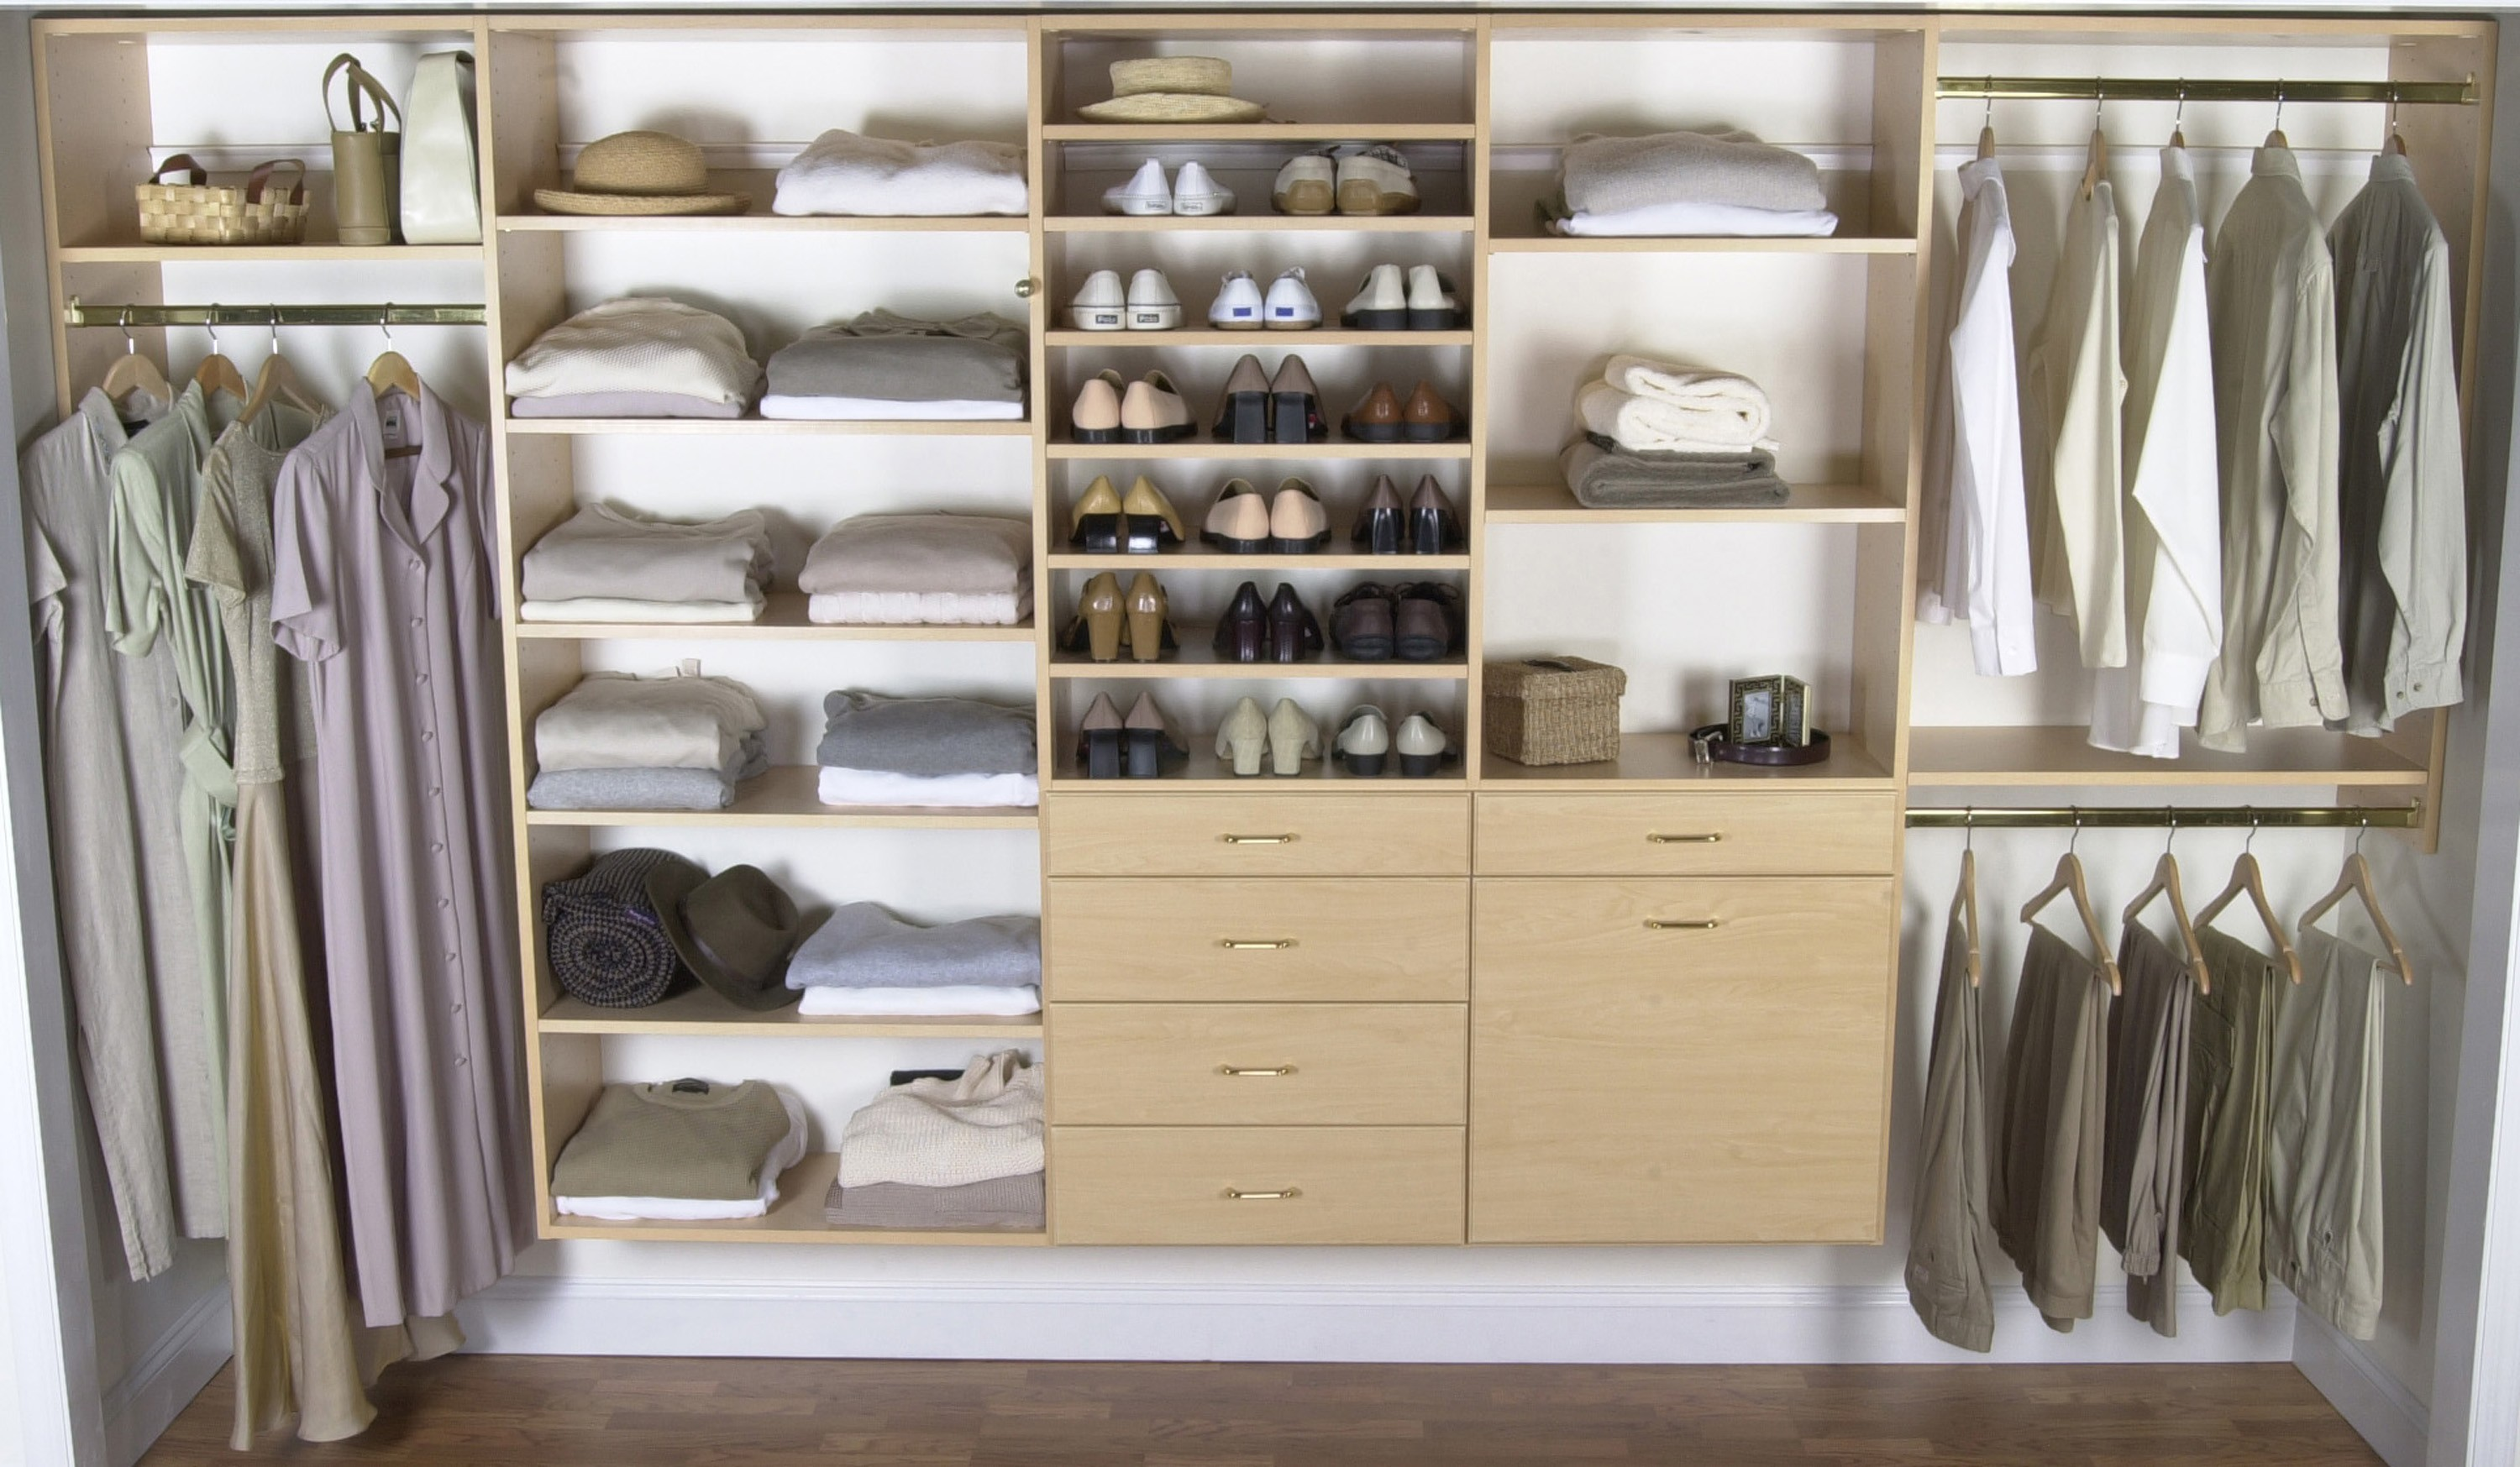 furniture-bedroom-cream-solid-wood-floating-wardrobe-for-small-bedroom-with-shelves-and-drawers-on-white-painted-wall-bedroom-closets-and-wardrobes